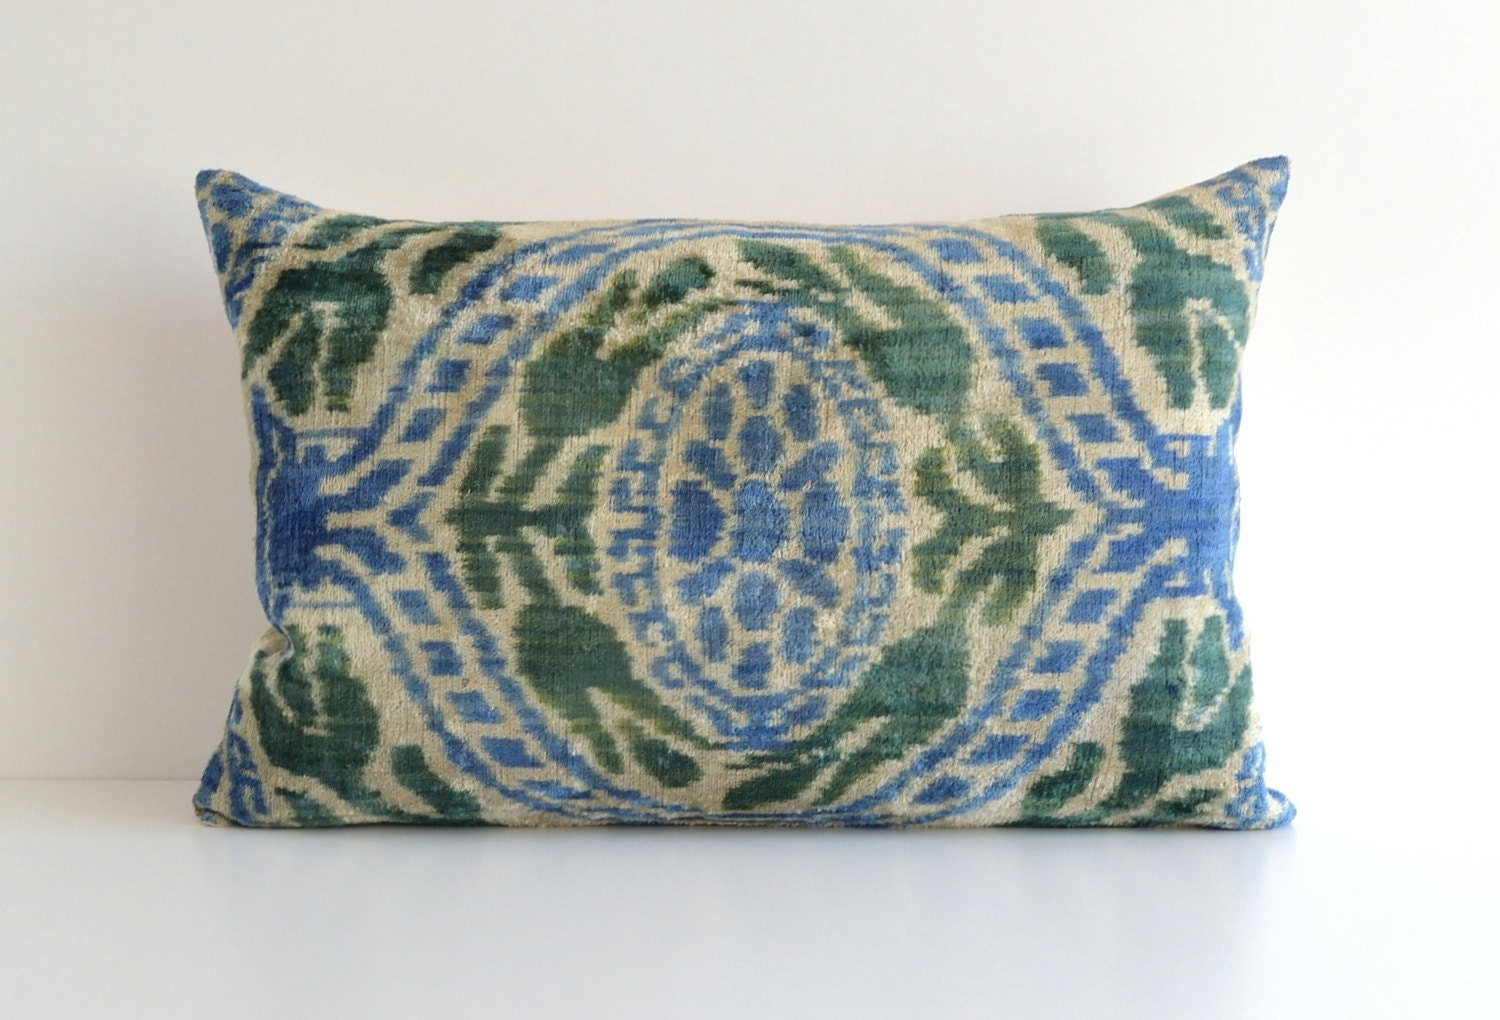 Blue Green Ikat Pillow Decorative Couch Pillows Accent